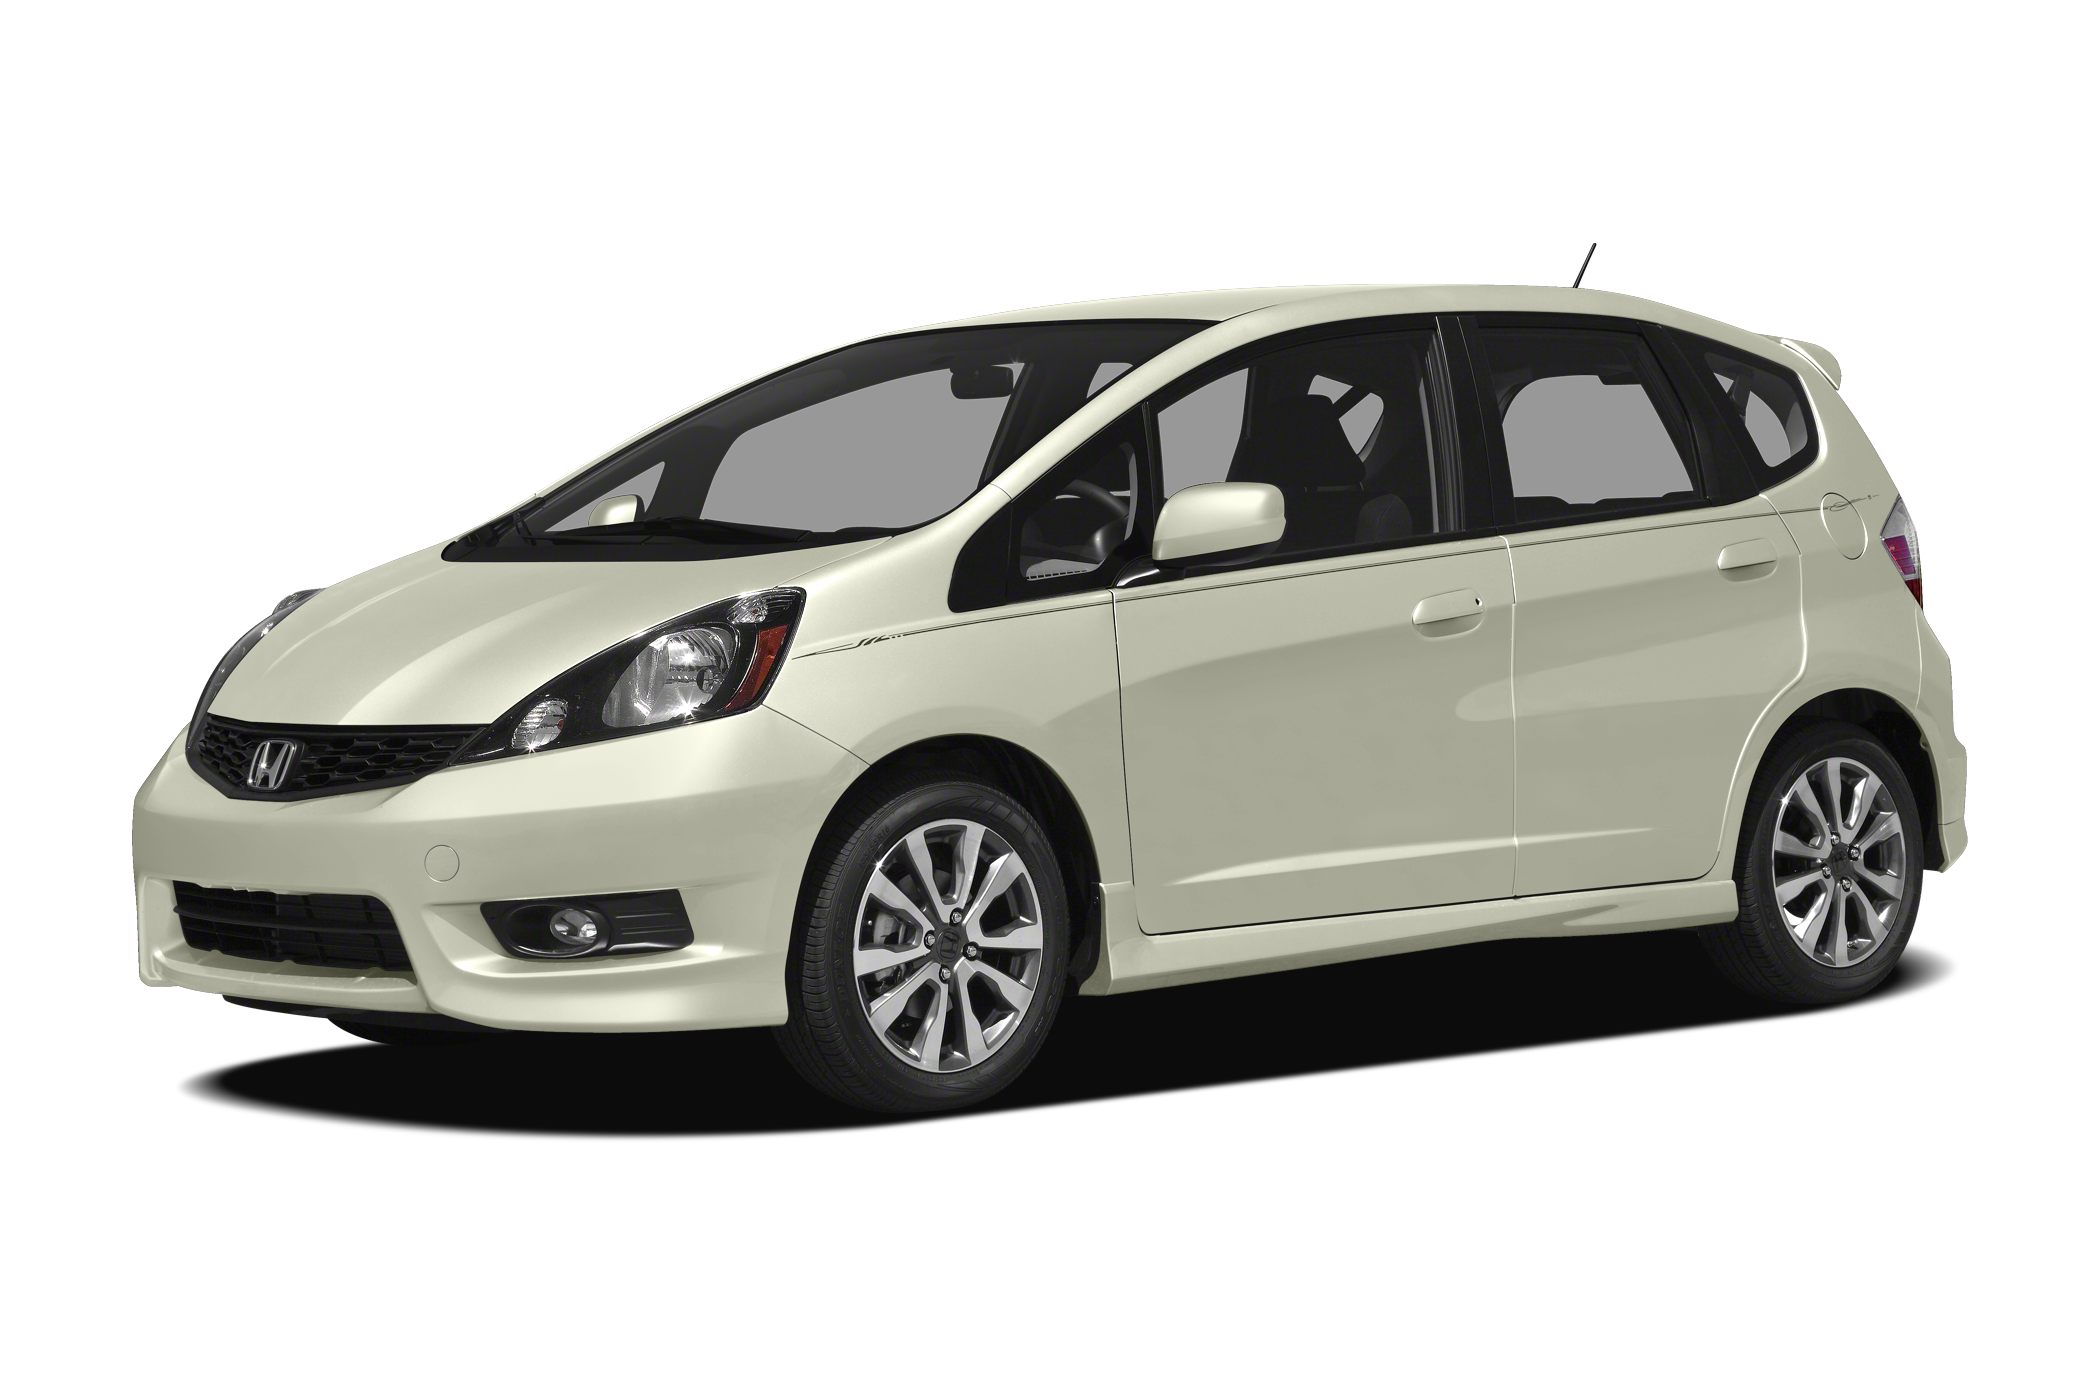 2012 Honda Fit Sport Hatchback for sale in Danville for $14,991 with 48,888 miles